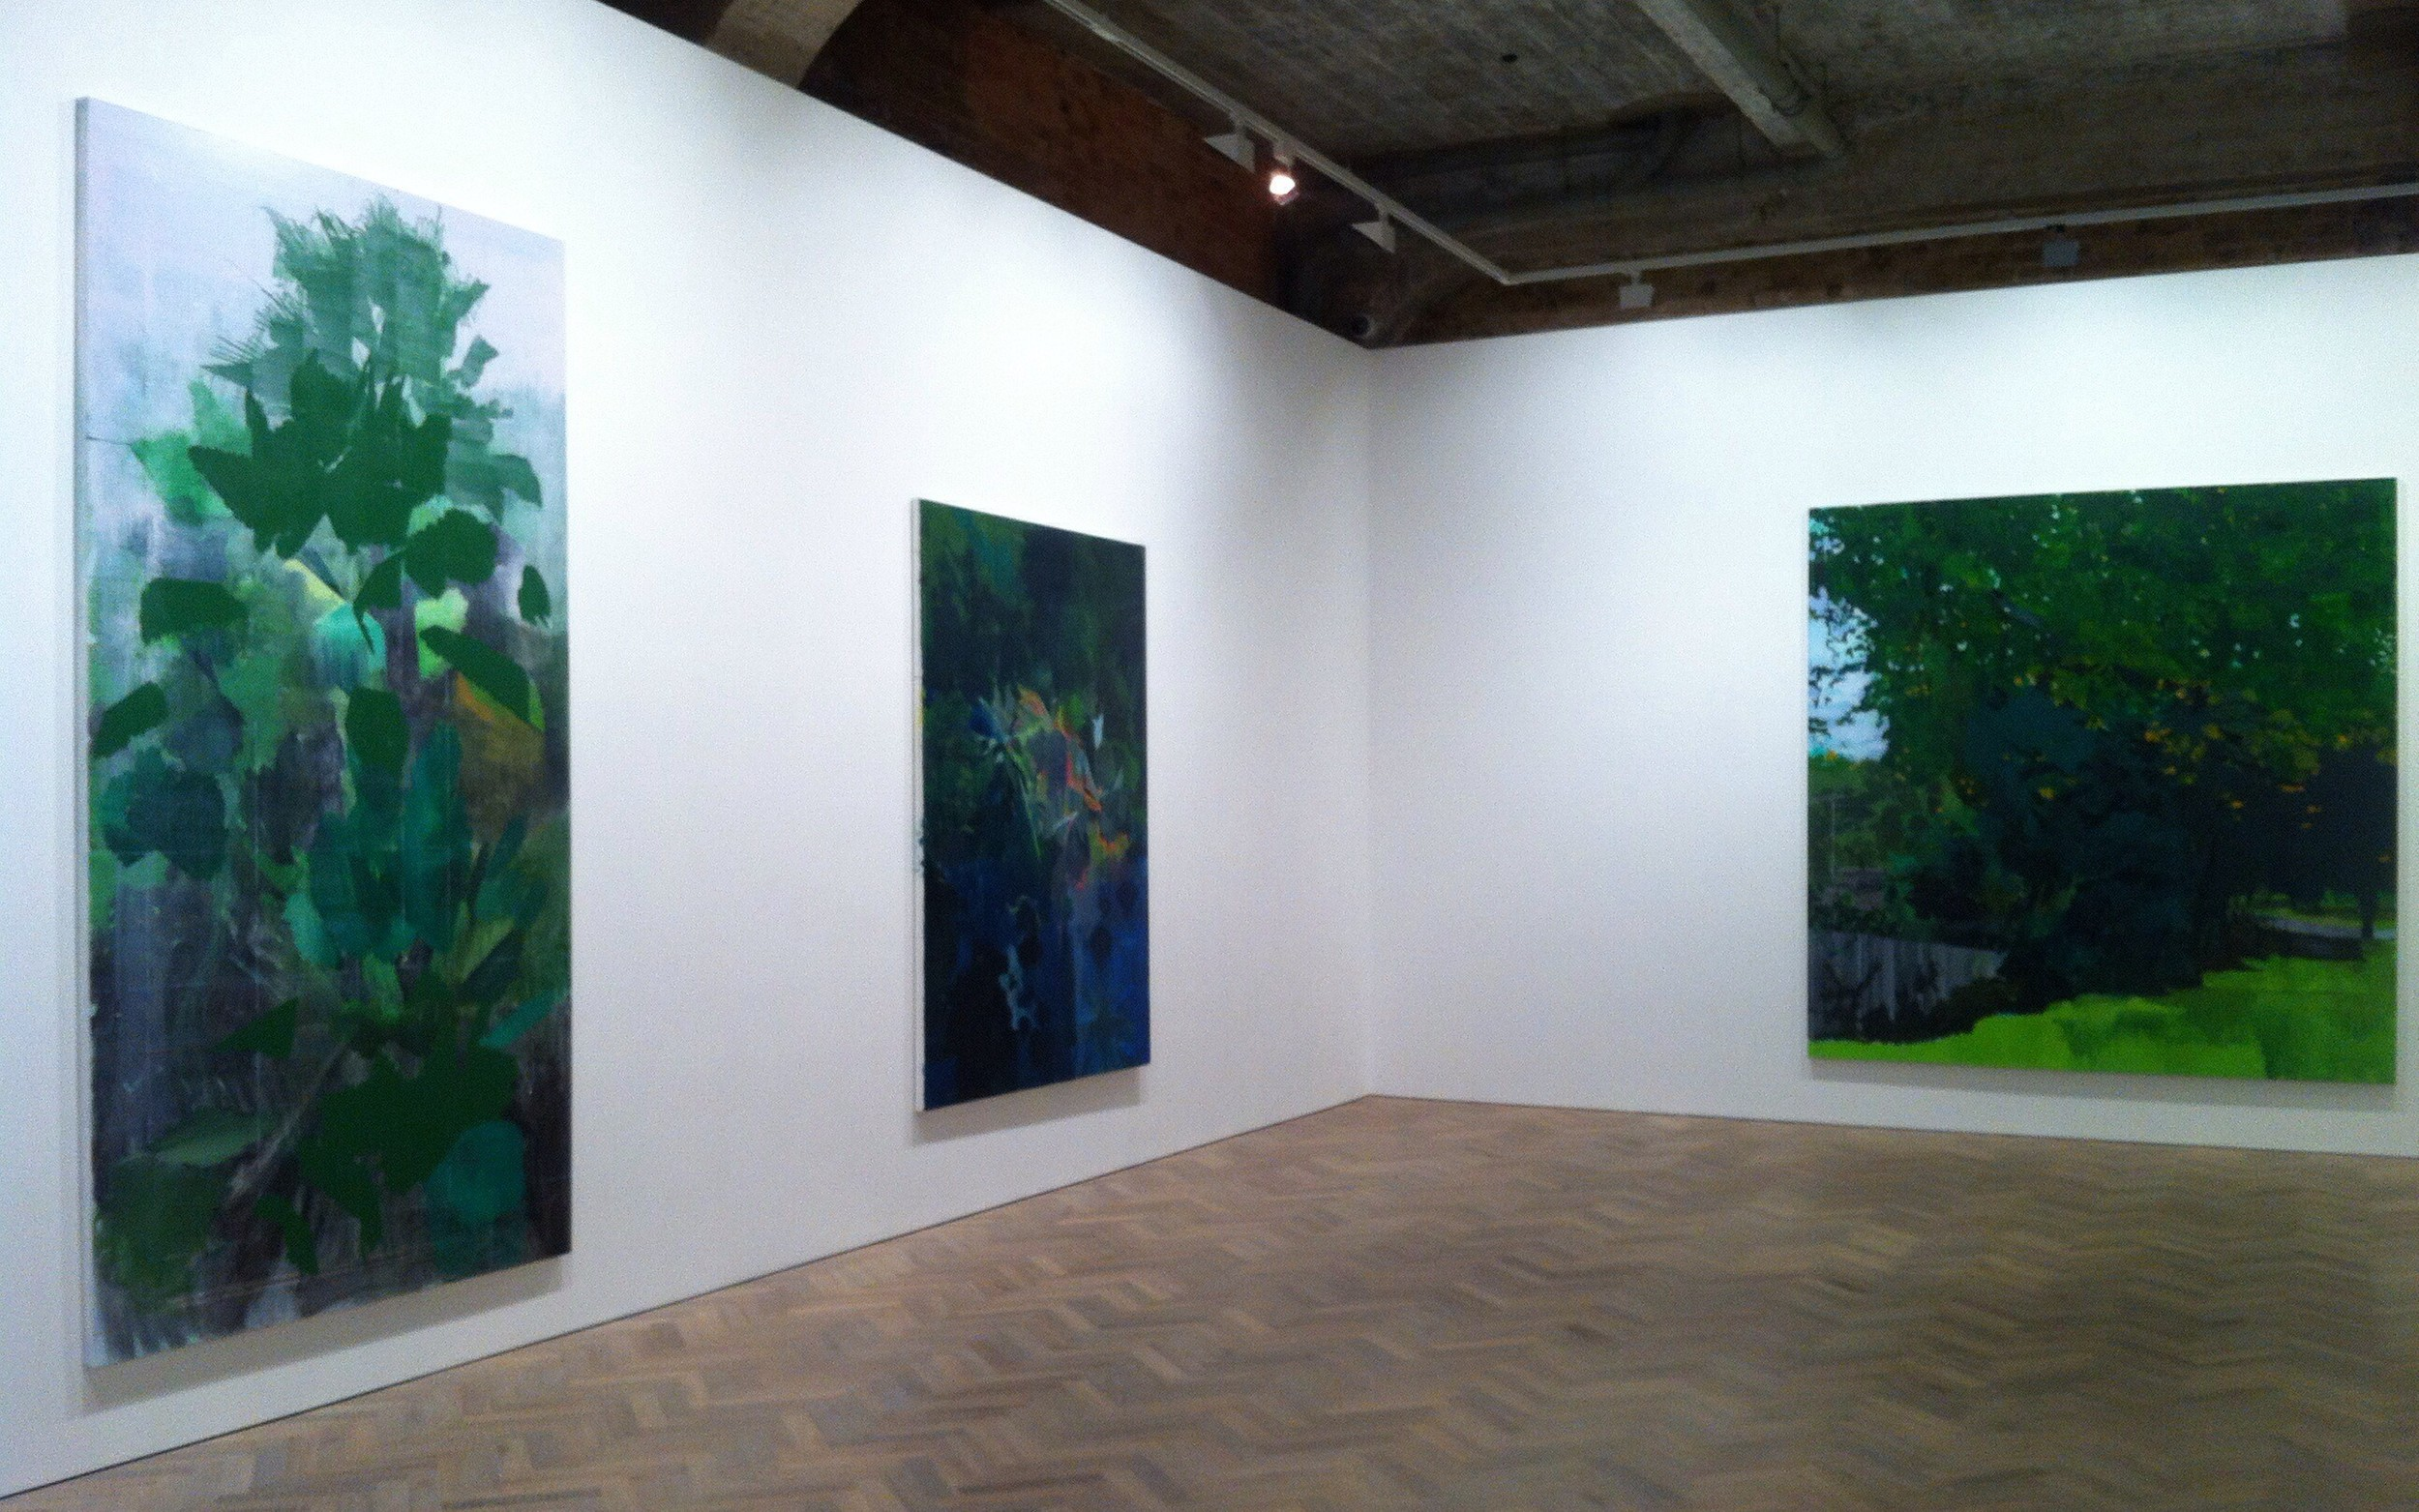 Installation view at Thomas Dane